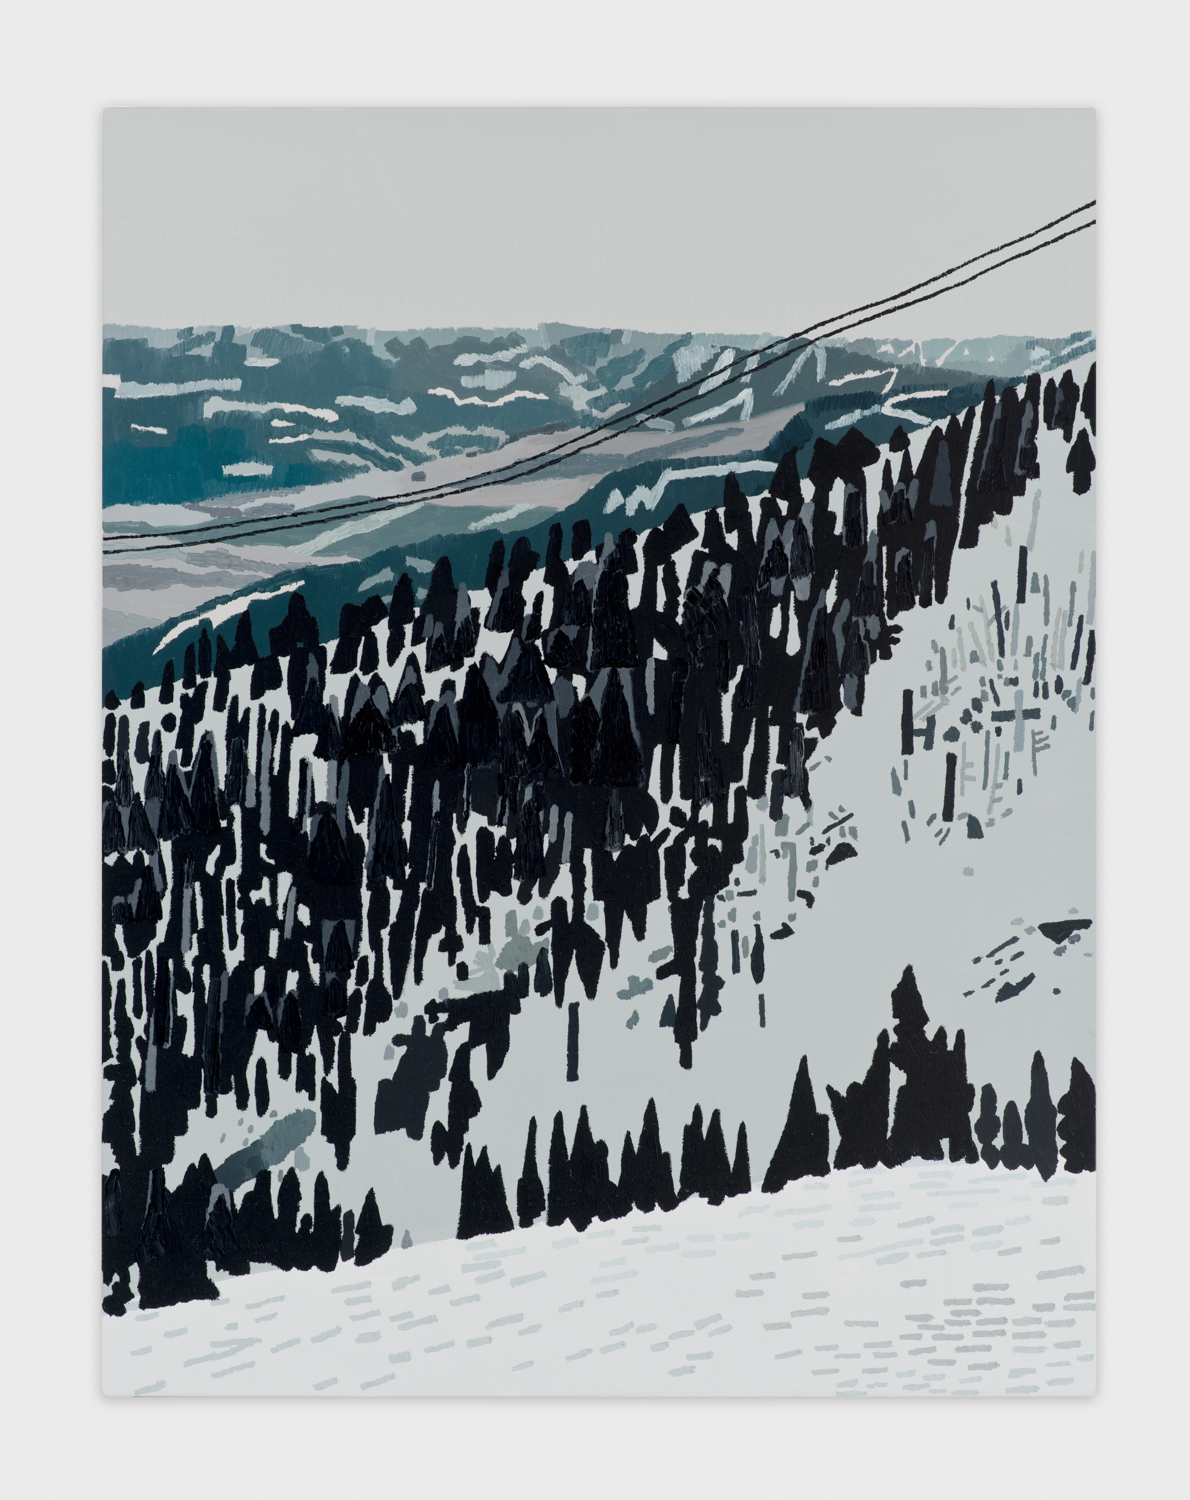 Jonas Wood  Jackson Hole Wyoming  2013 Oil and acrylic on linen 35h x 27w in  JW152